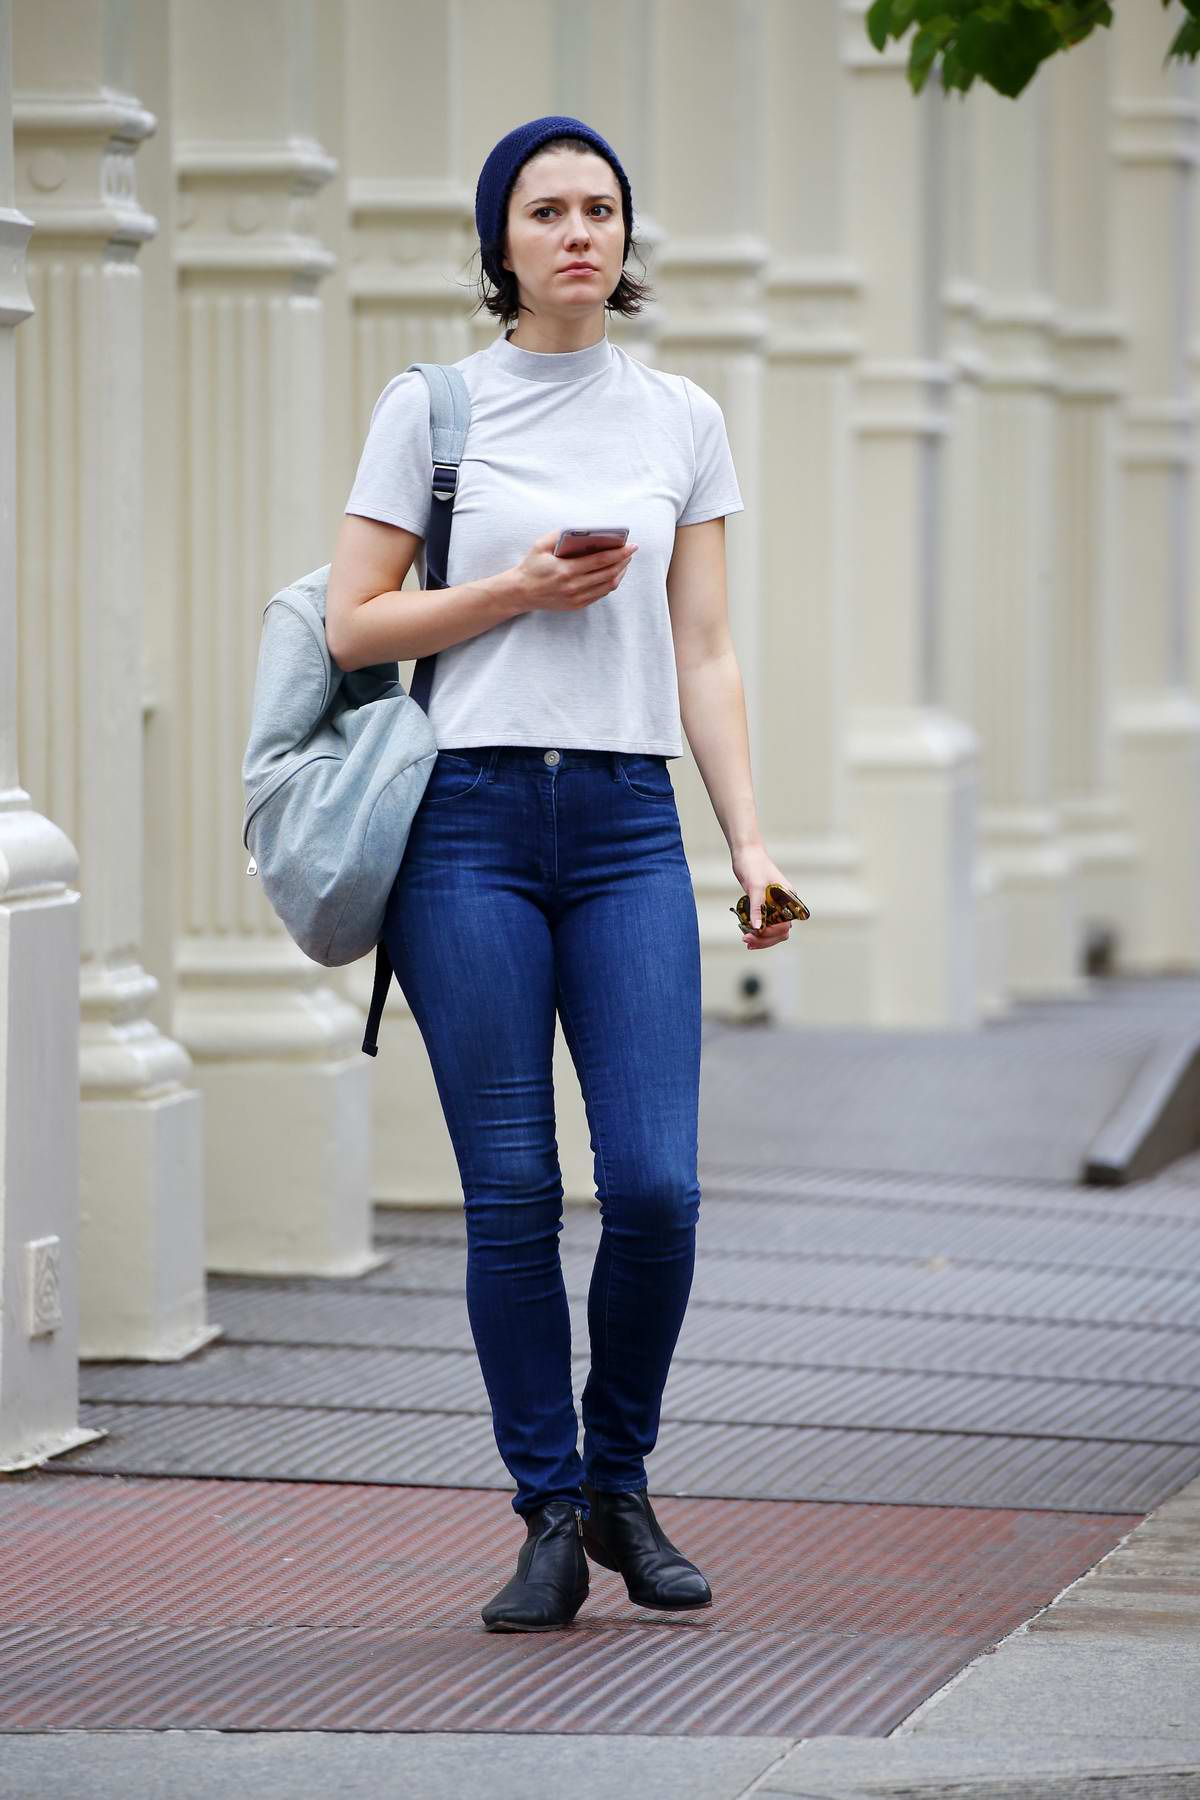 Mary Elizabeth Winstead wearing a white top and jeans with blue bonnet while out in Soho, New York City